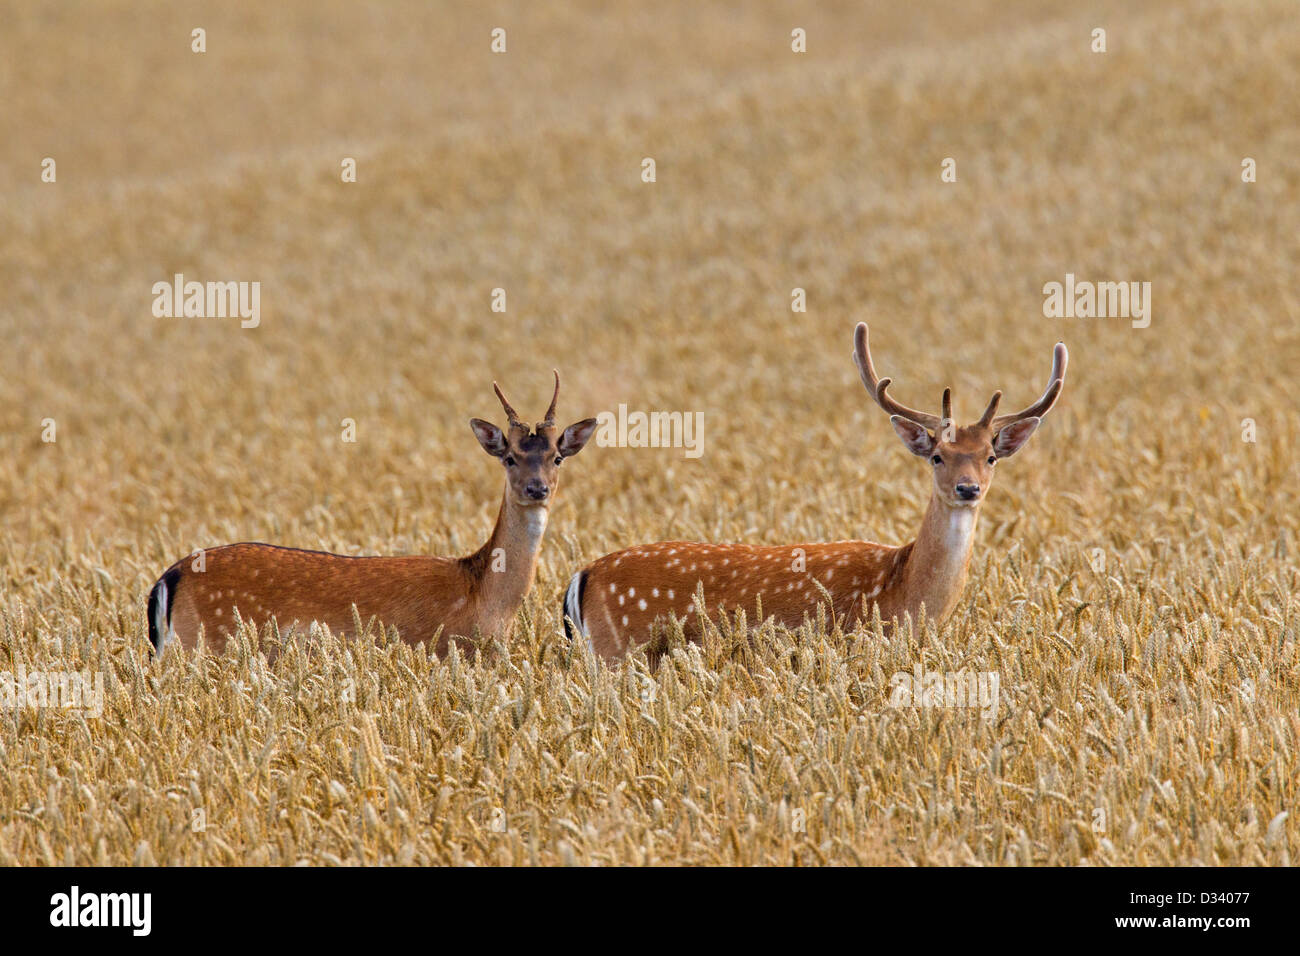 Two young fallow deer (Dama dama) bucks with antlers covered in velvet in wheat field in summer Stock Photo